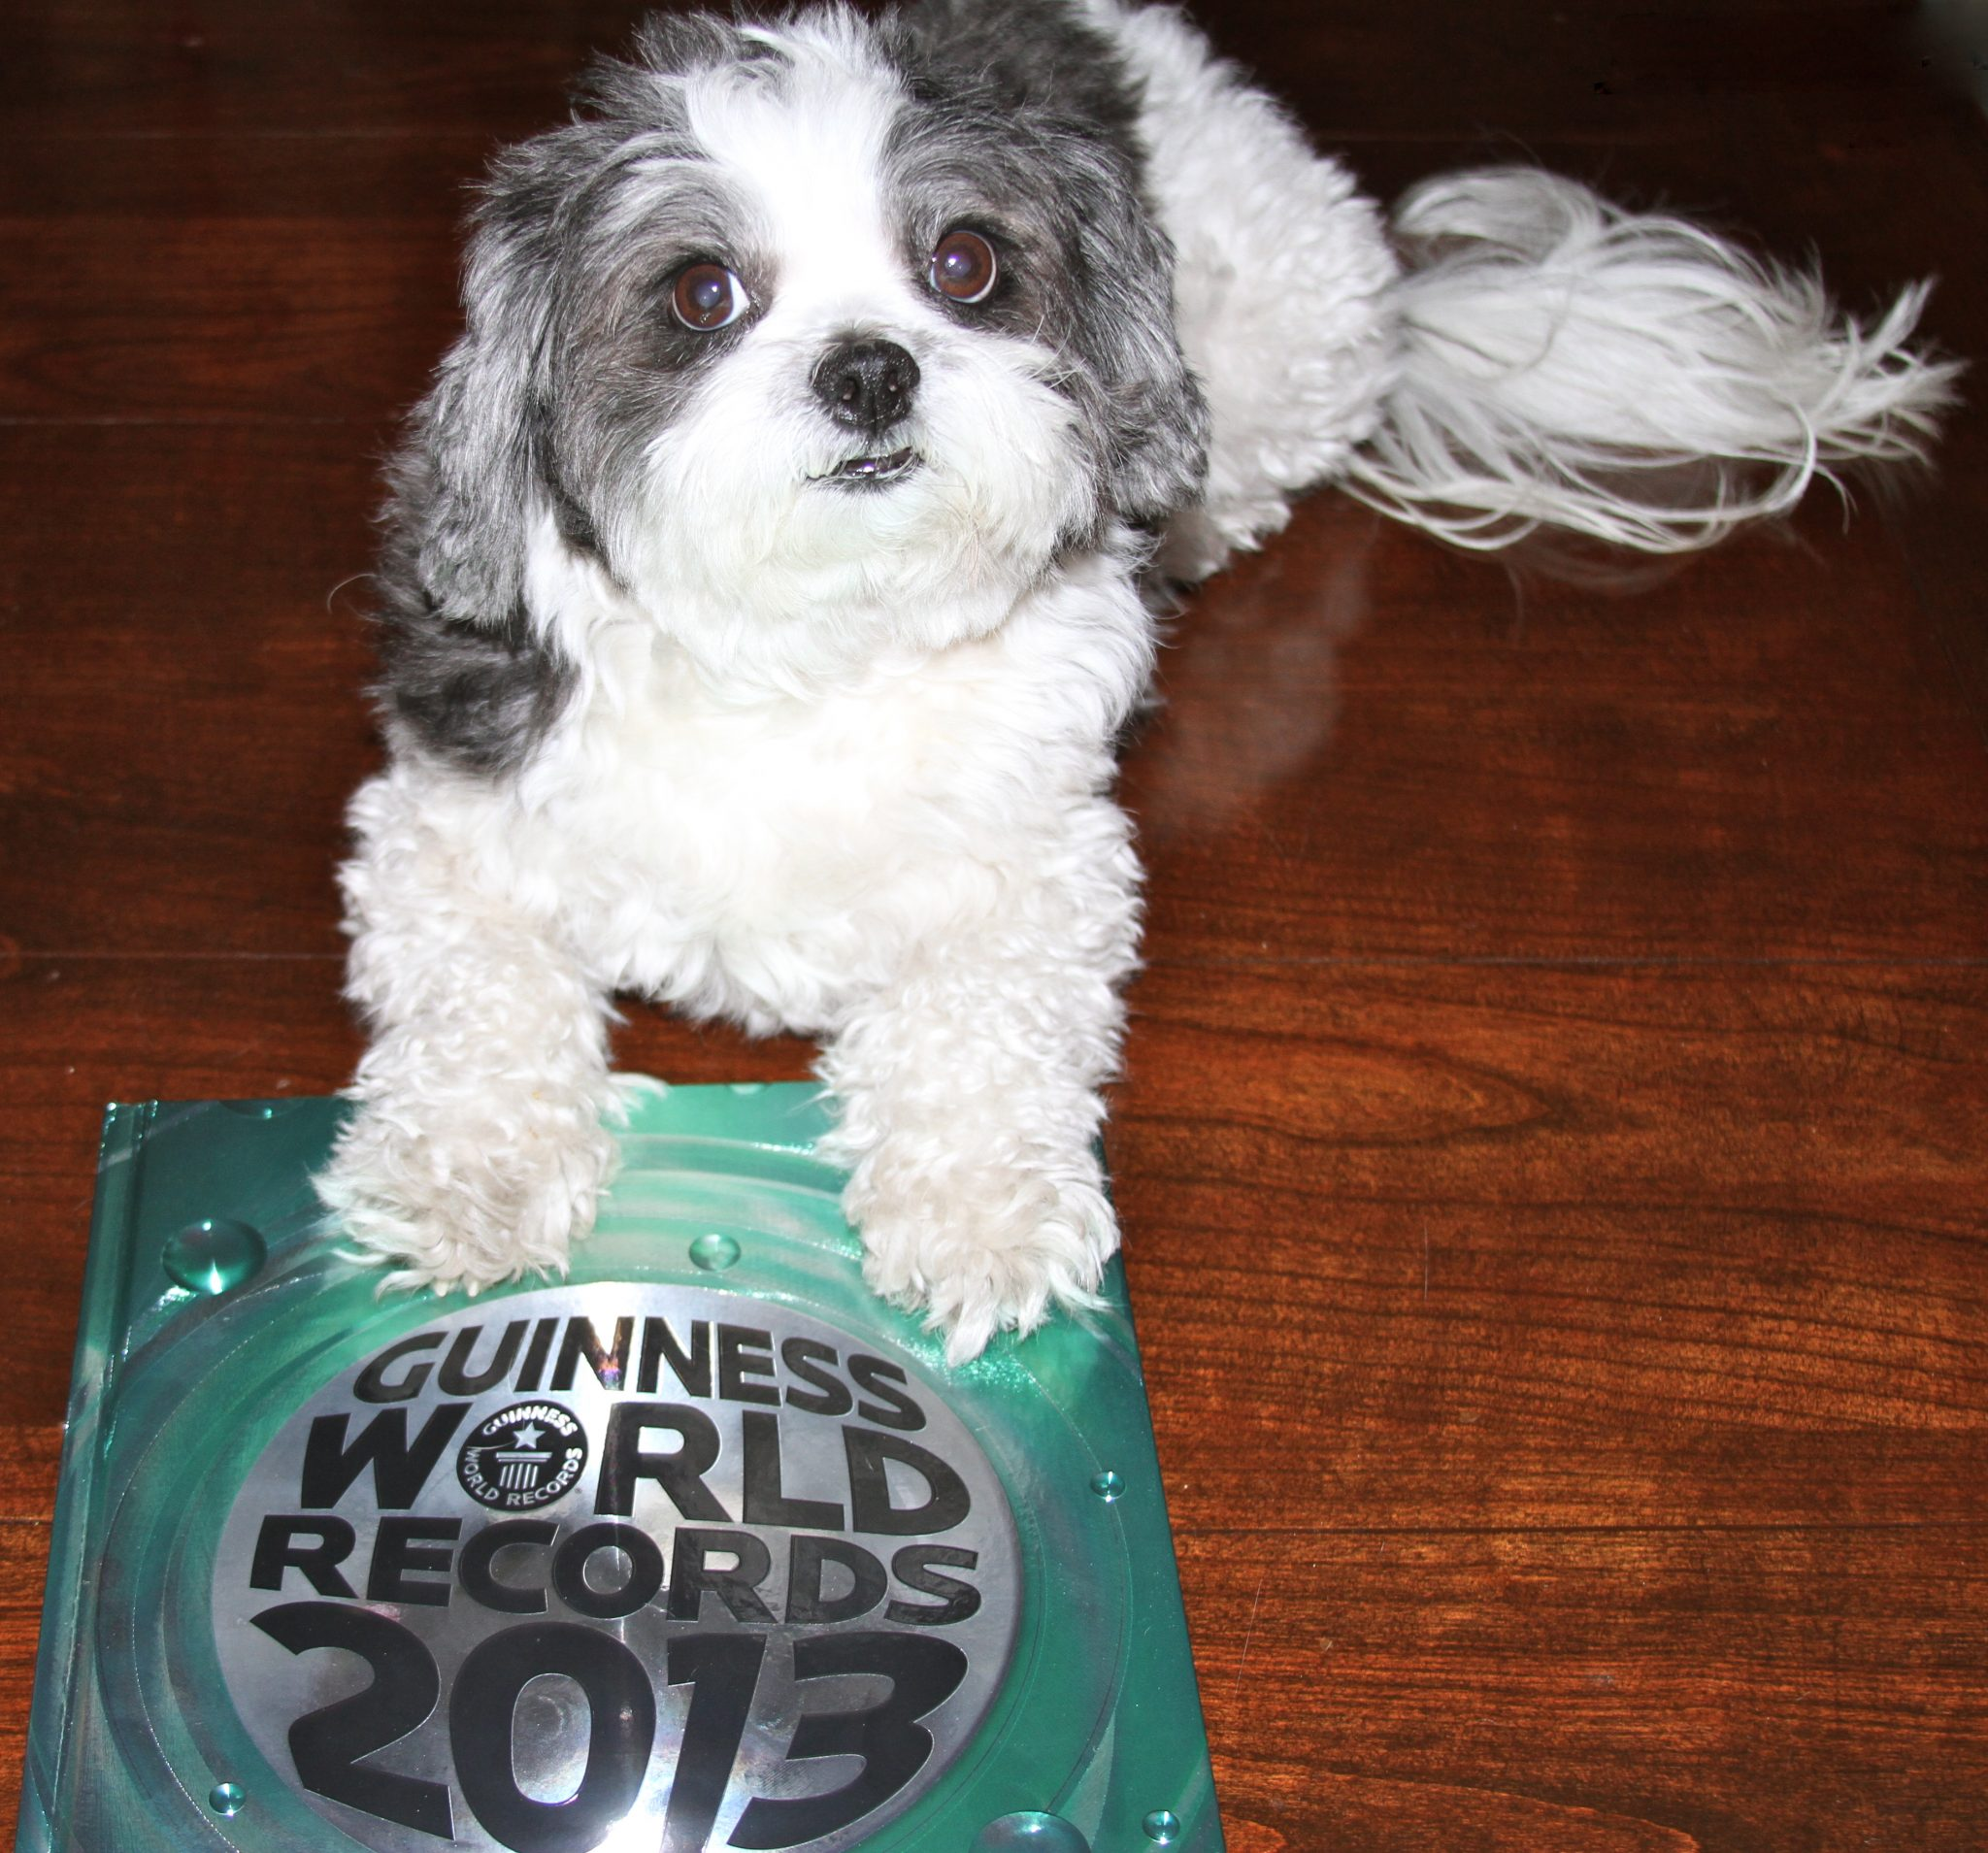 Happy Guinness World Record Day! Baby Hope Celebrates Her Legacy with the Guinness World Records Book!